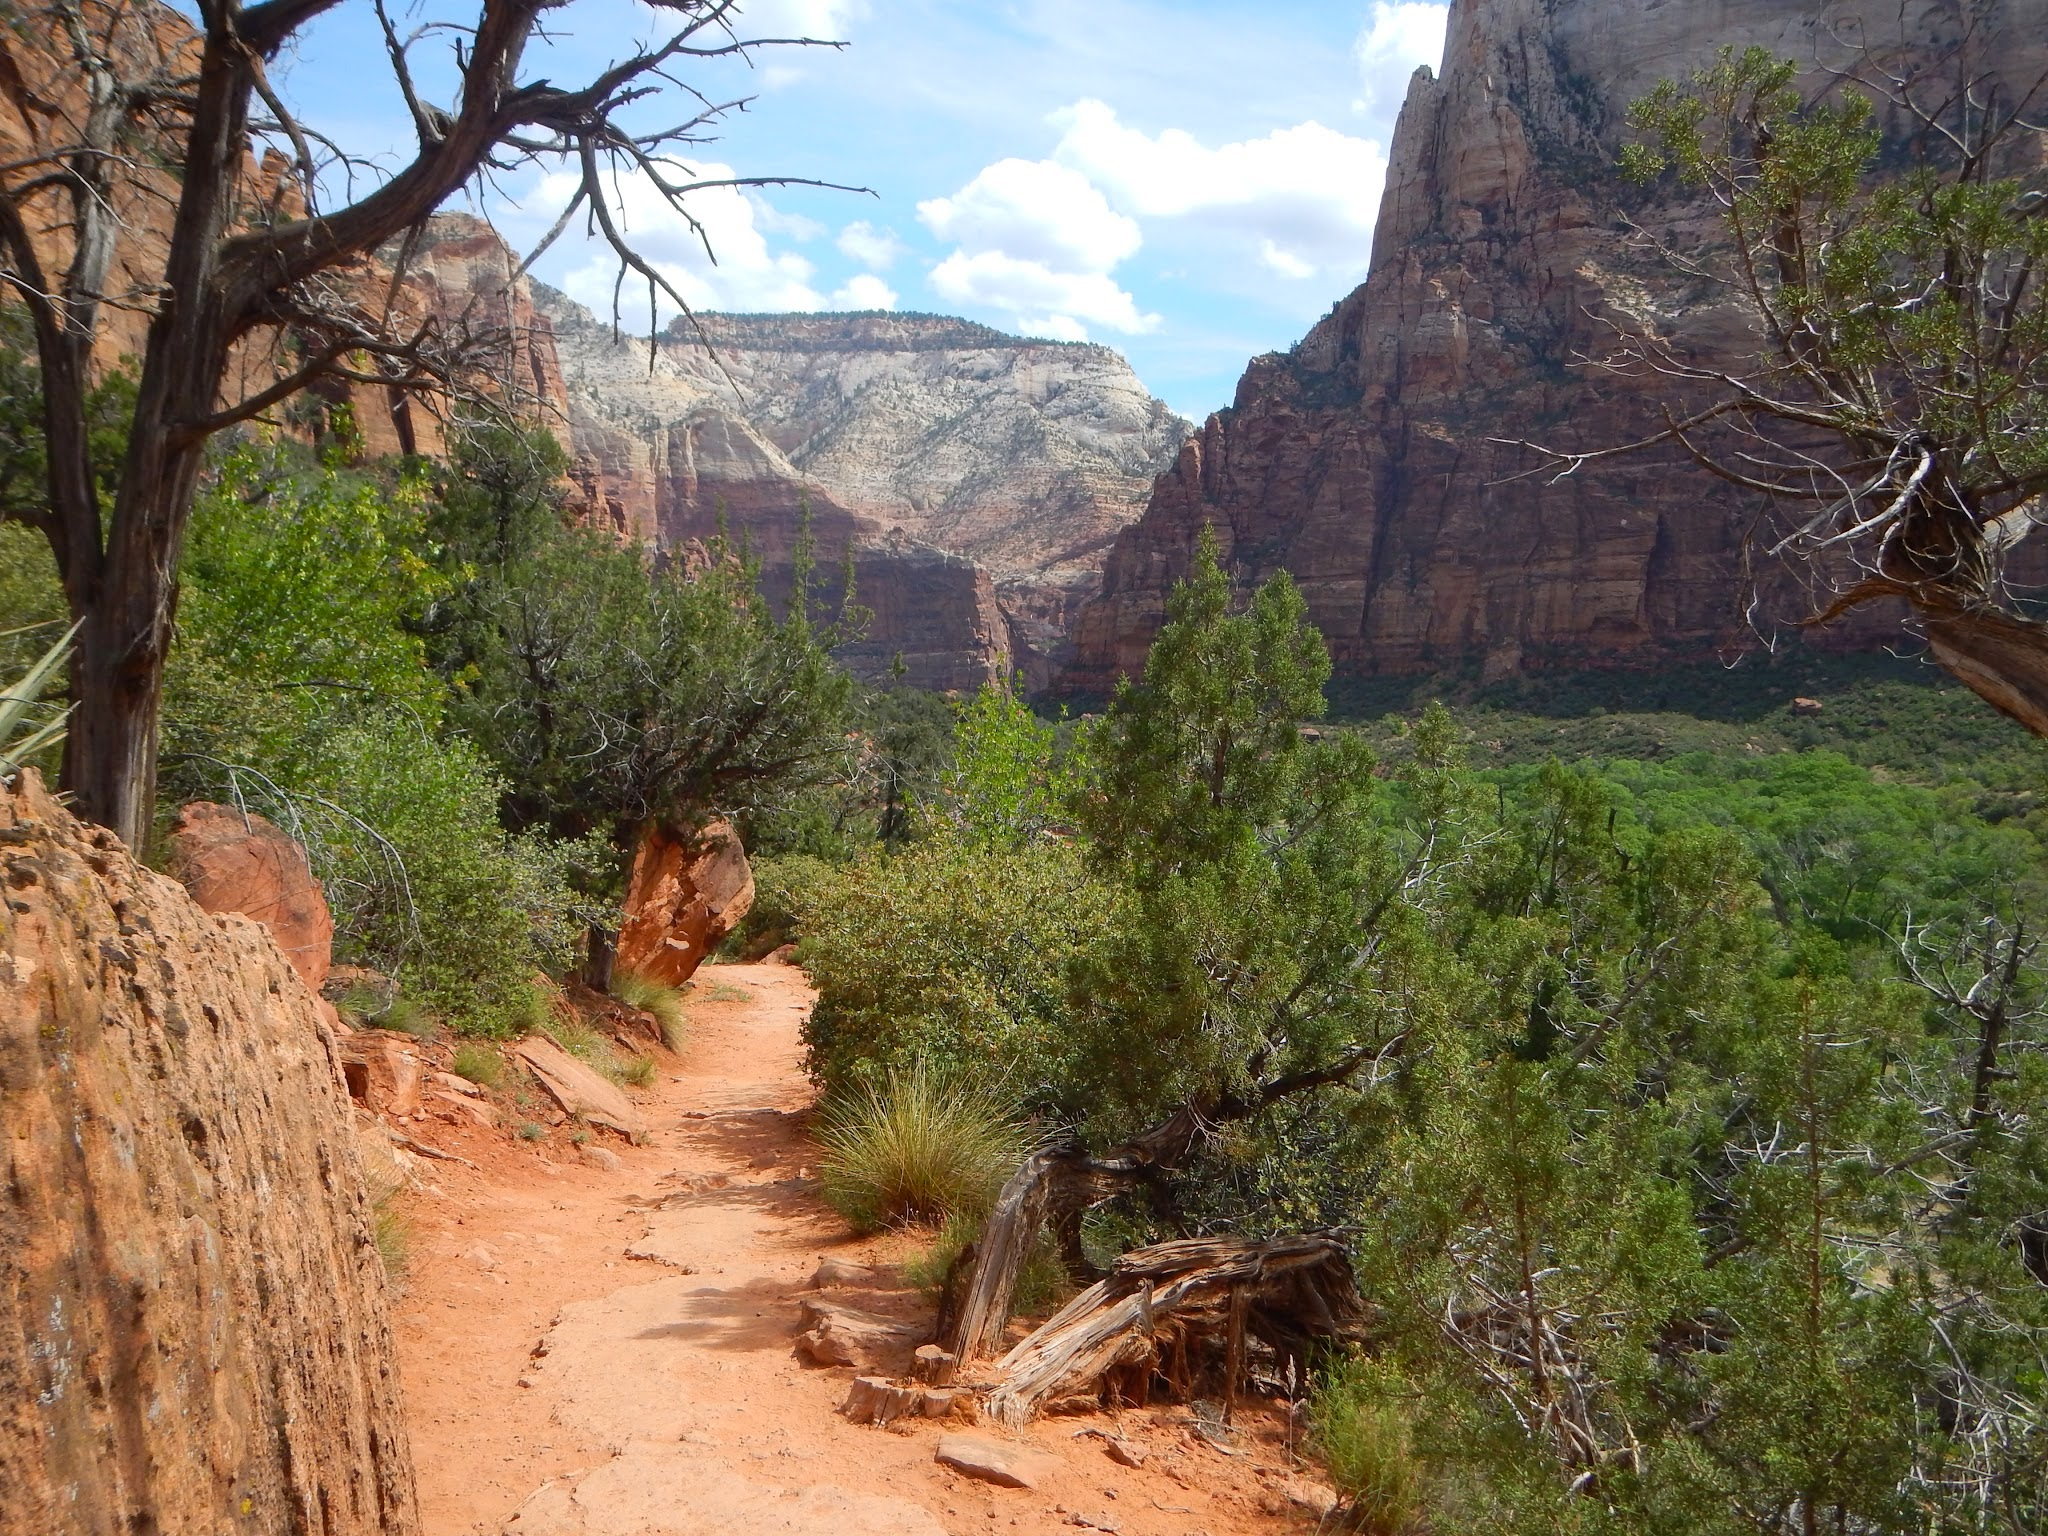 Photo: Hiking towards the Emerald Pools